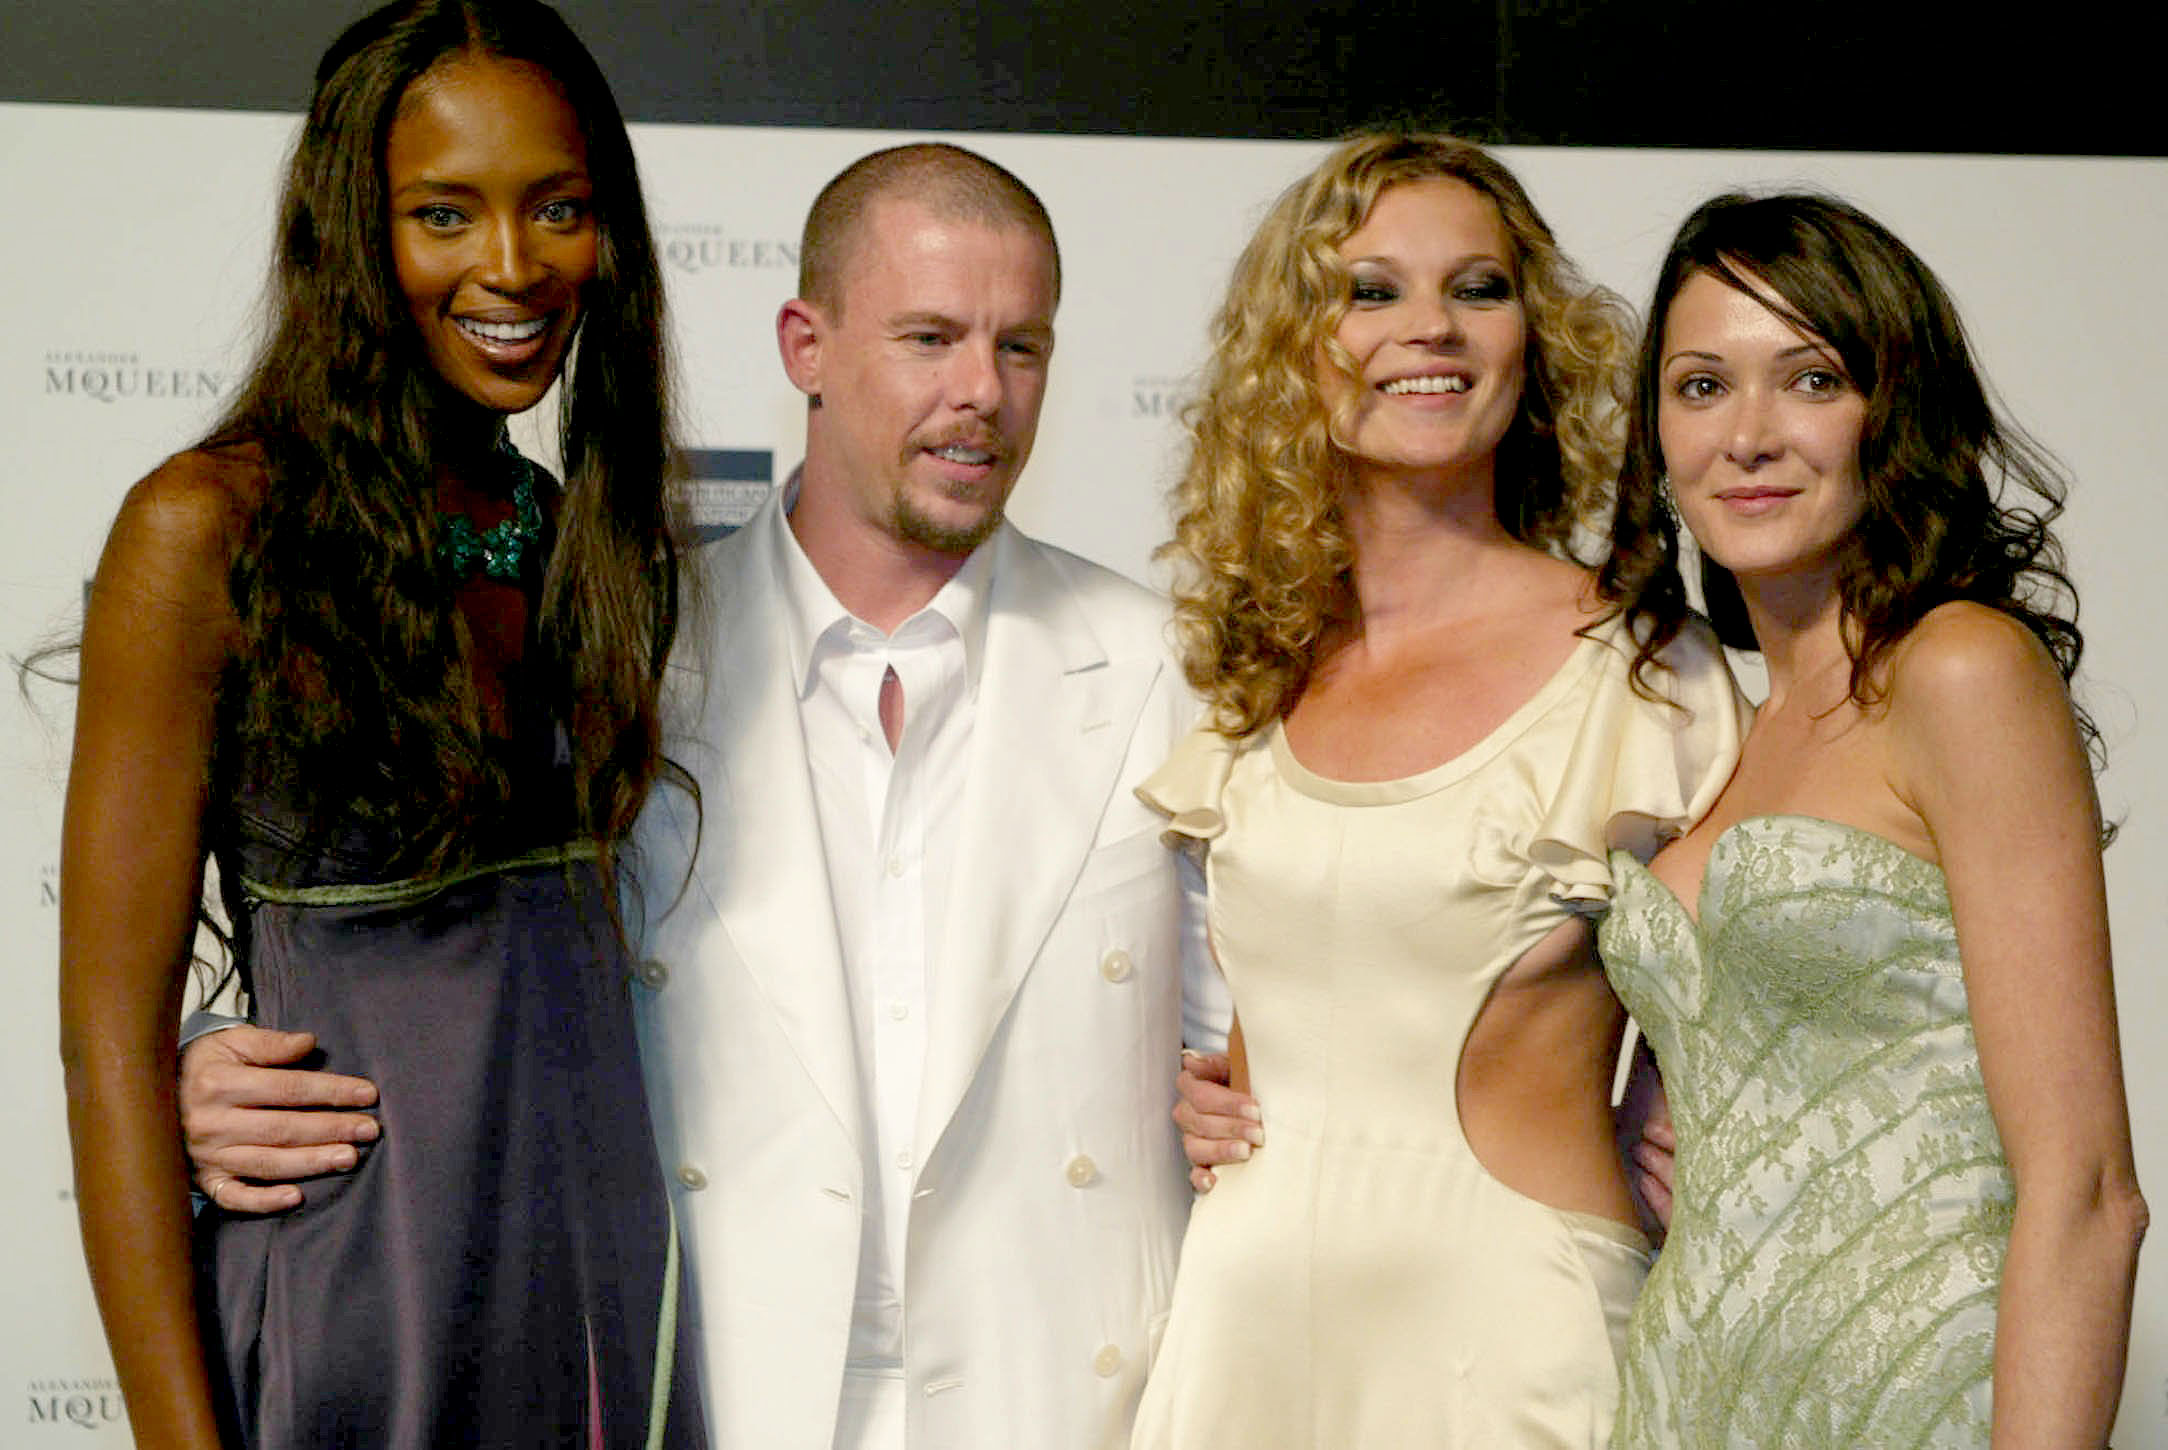 Naomi Campbell, Lee Alexander McQueen, Kate Moss and Annabelle Neilson at the 'Black' Art And Fashion Charity Auction For Lighthouse Services Charity hosted by Alexander Mcqueen in London, 2004